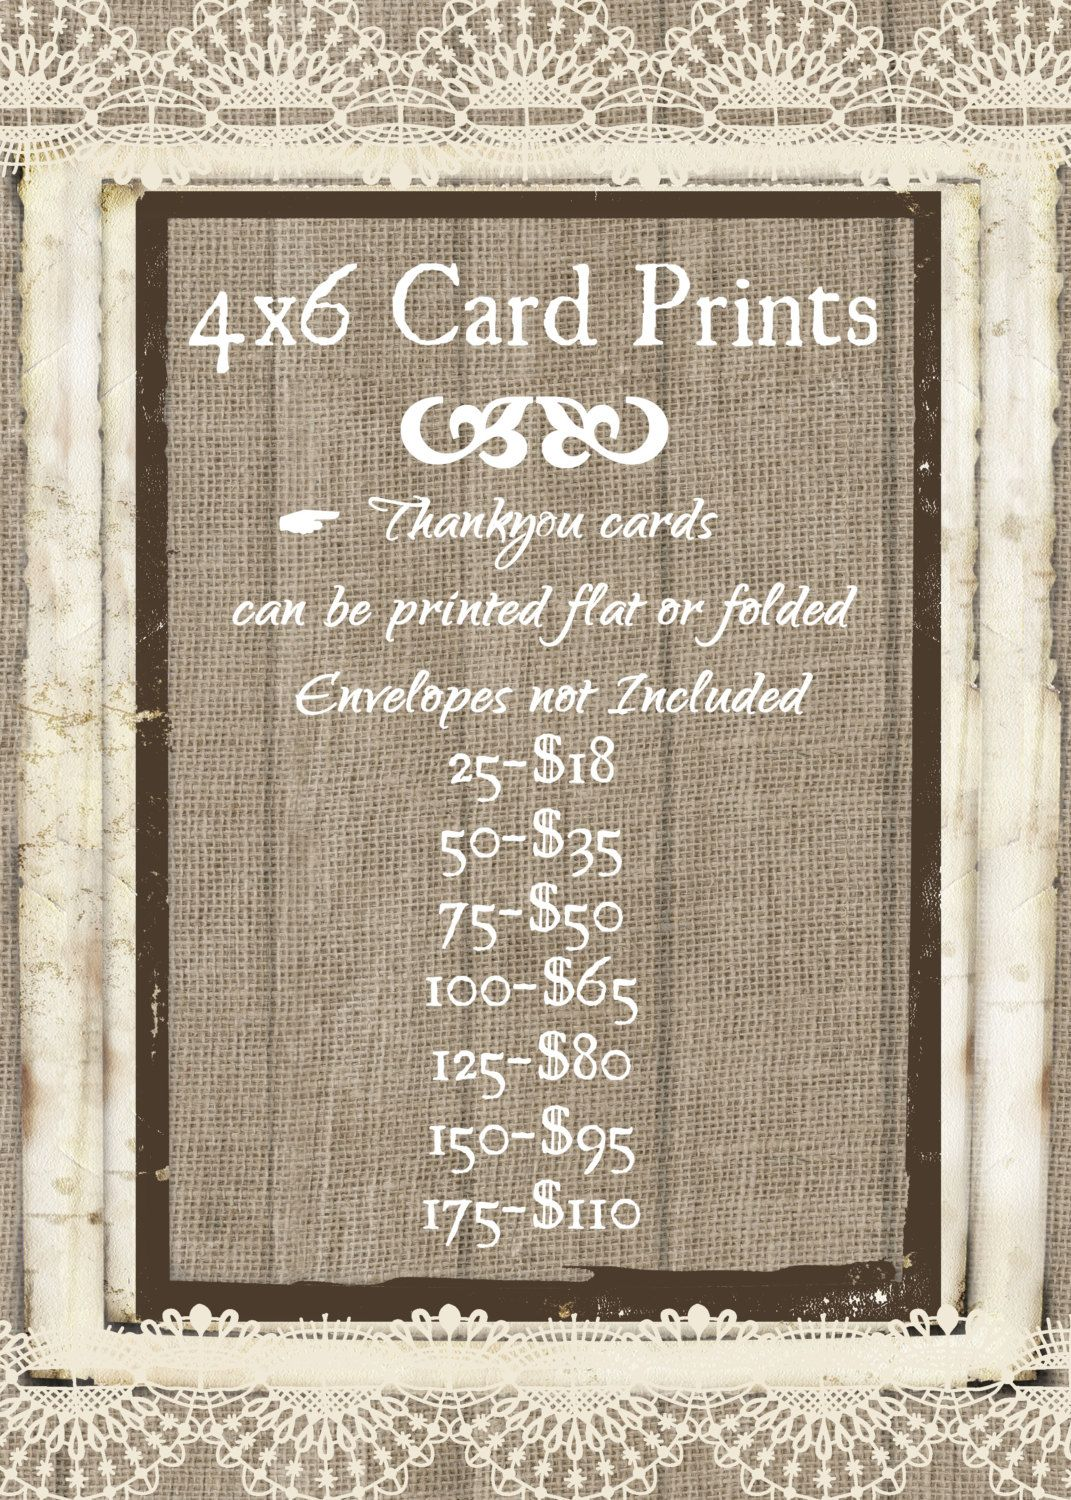 x thankyou cards printing prices thank you cards card stock, invitation samples